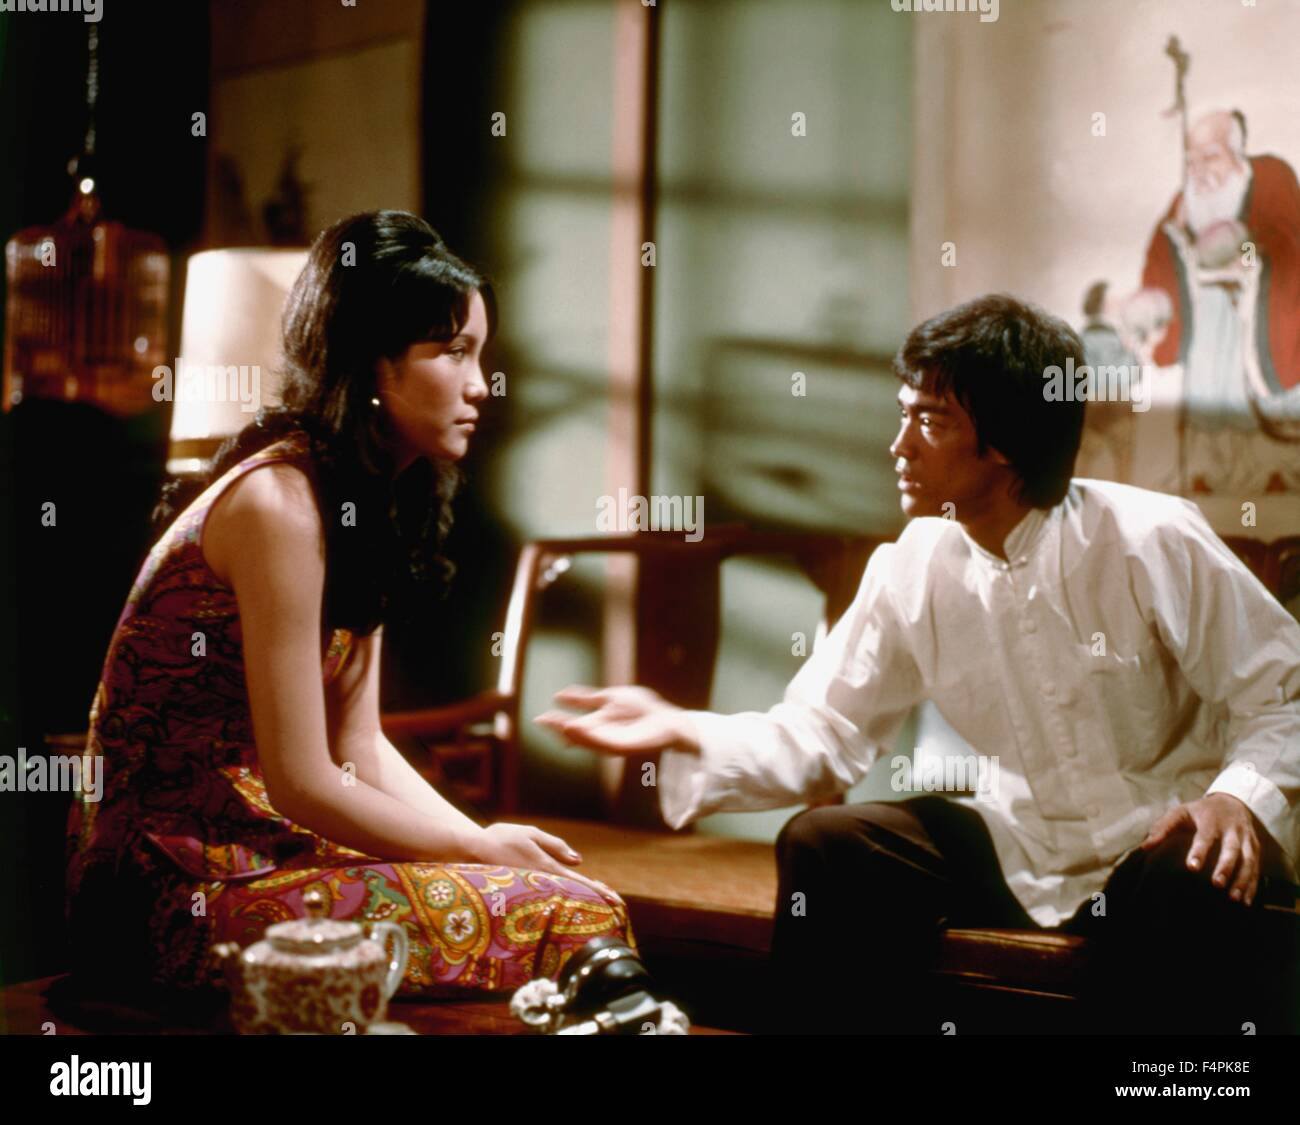 Betty Chung and Bruce Lee / Enter the Dragon / 1973 directed by Robert Clouse [Warner Bros. Pictures] - Stock Image